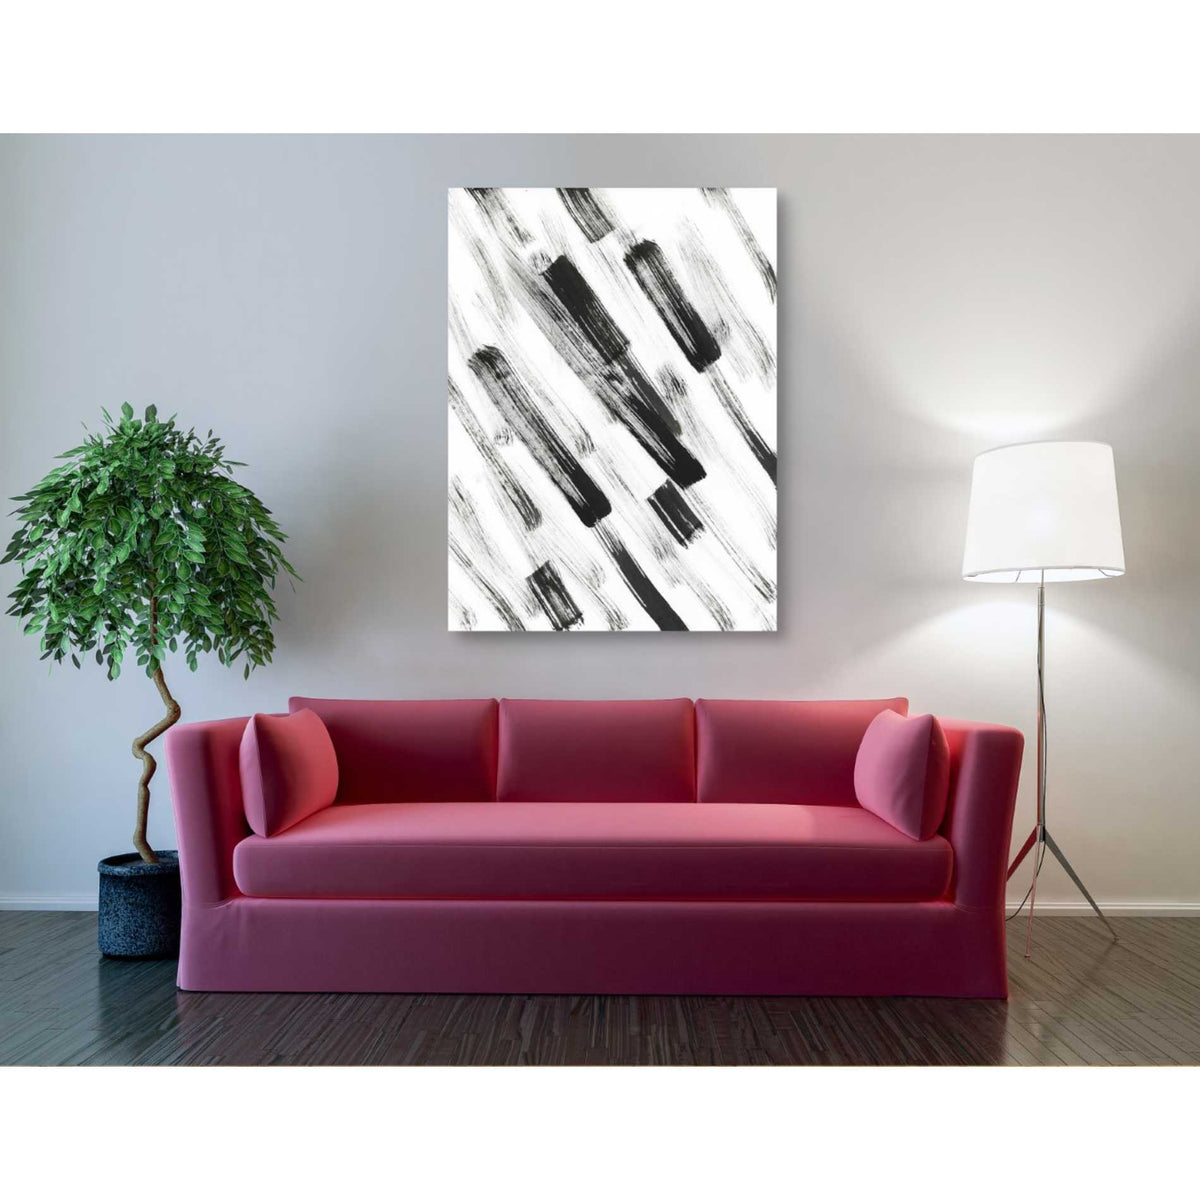 Epic Graffiti 'Black and White Strokes North East' Giclee Canvas Wall Art